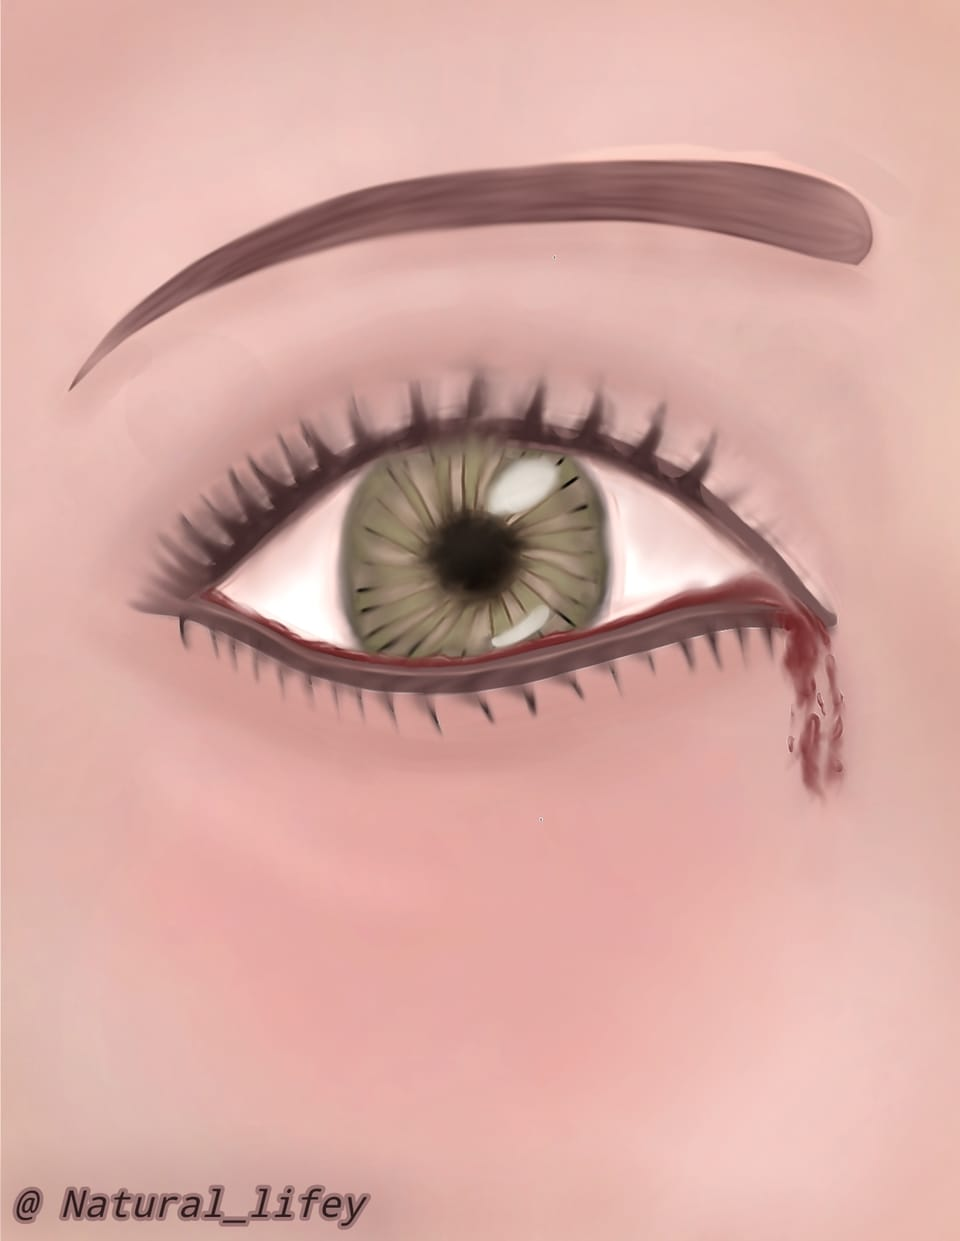 In your opinion, does the eye look like relastic? Illust of Natural_lifey May2021_Monochrome June2021_Anthropomorphism MasterpieceFanart ponytail illustration fanart cute art woman Drawings drawing manga anime sketch